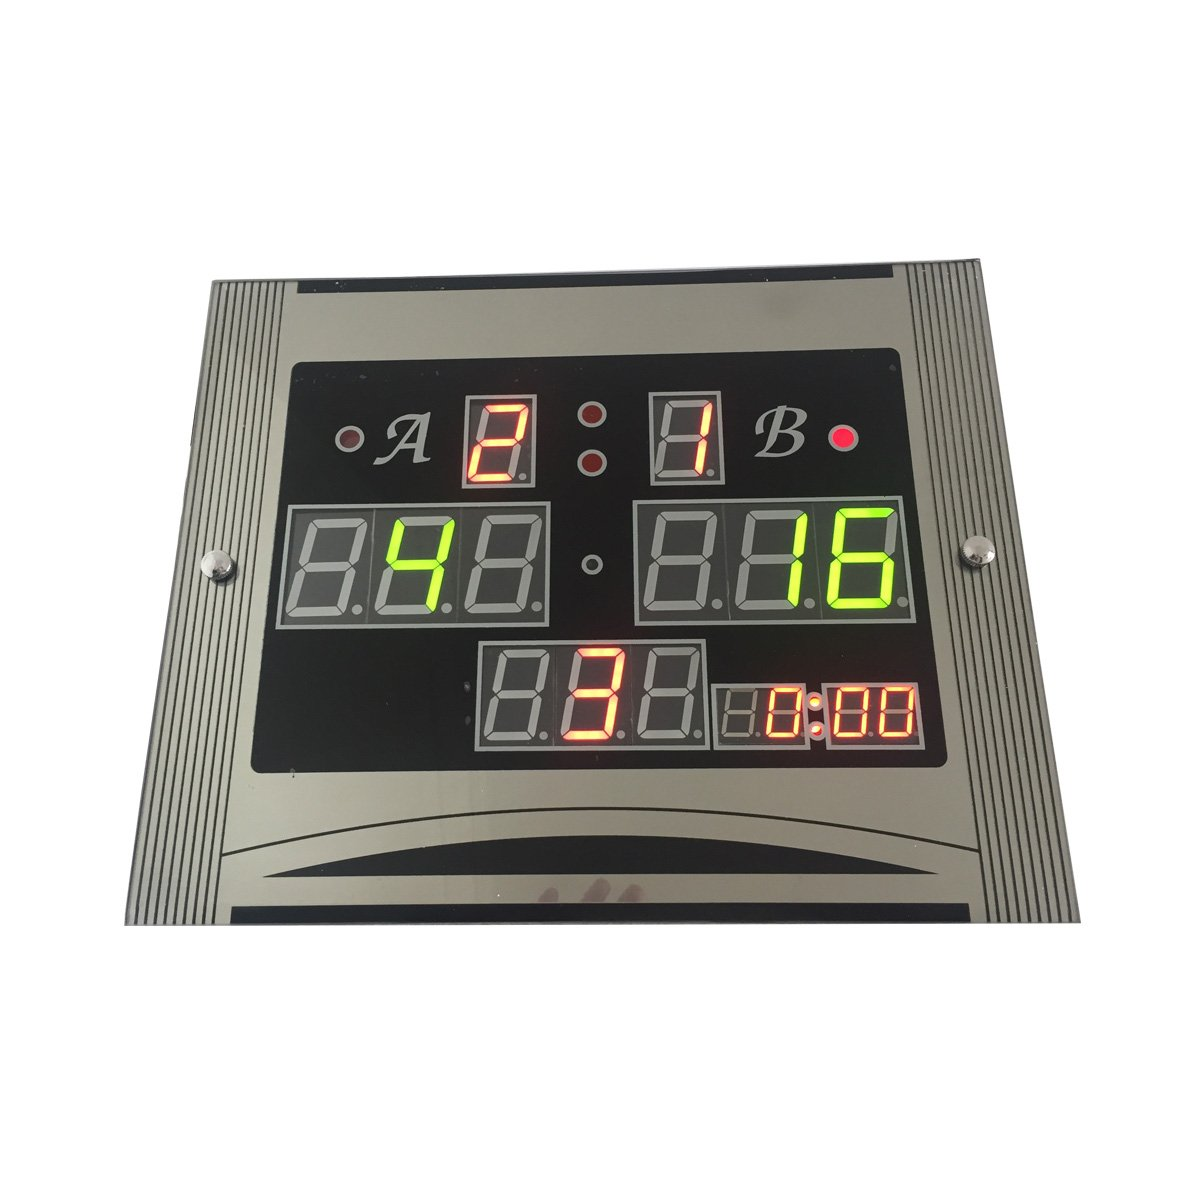 Ledgital Scoreboard for Snooker Game LED Snooker Scoreboard for Players 14x11.4x1in. DLC Electronics